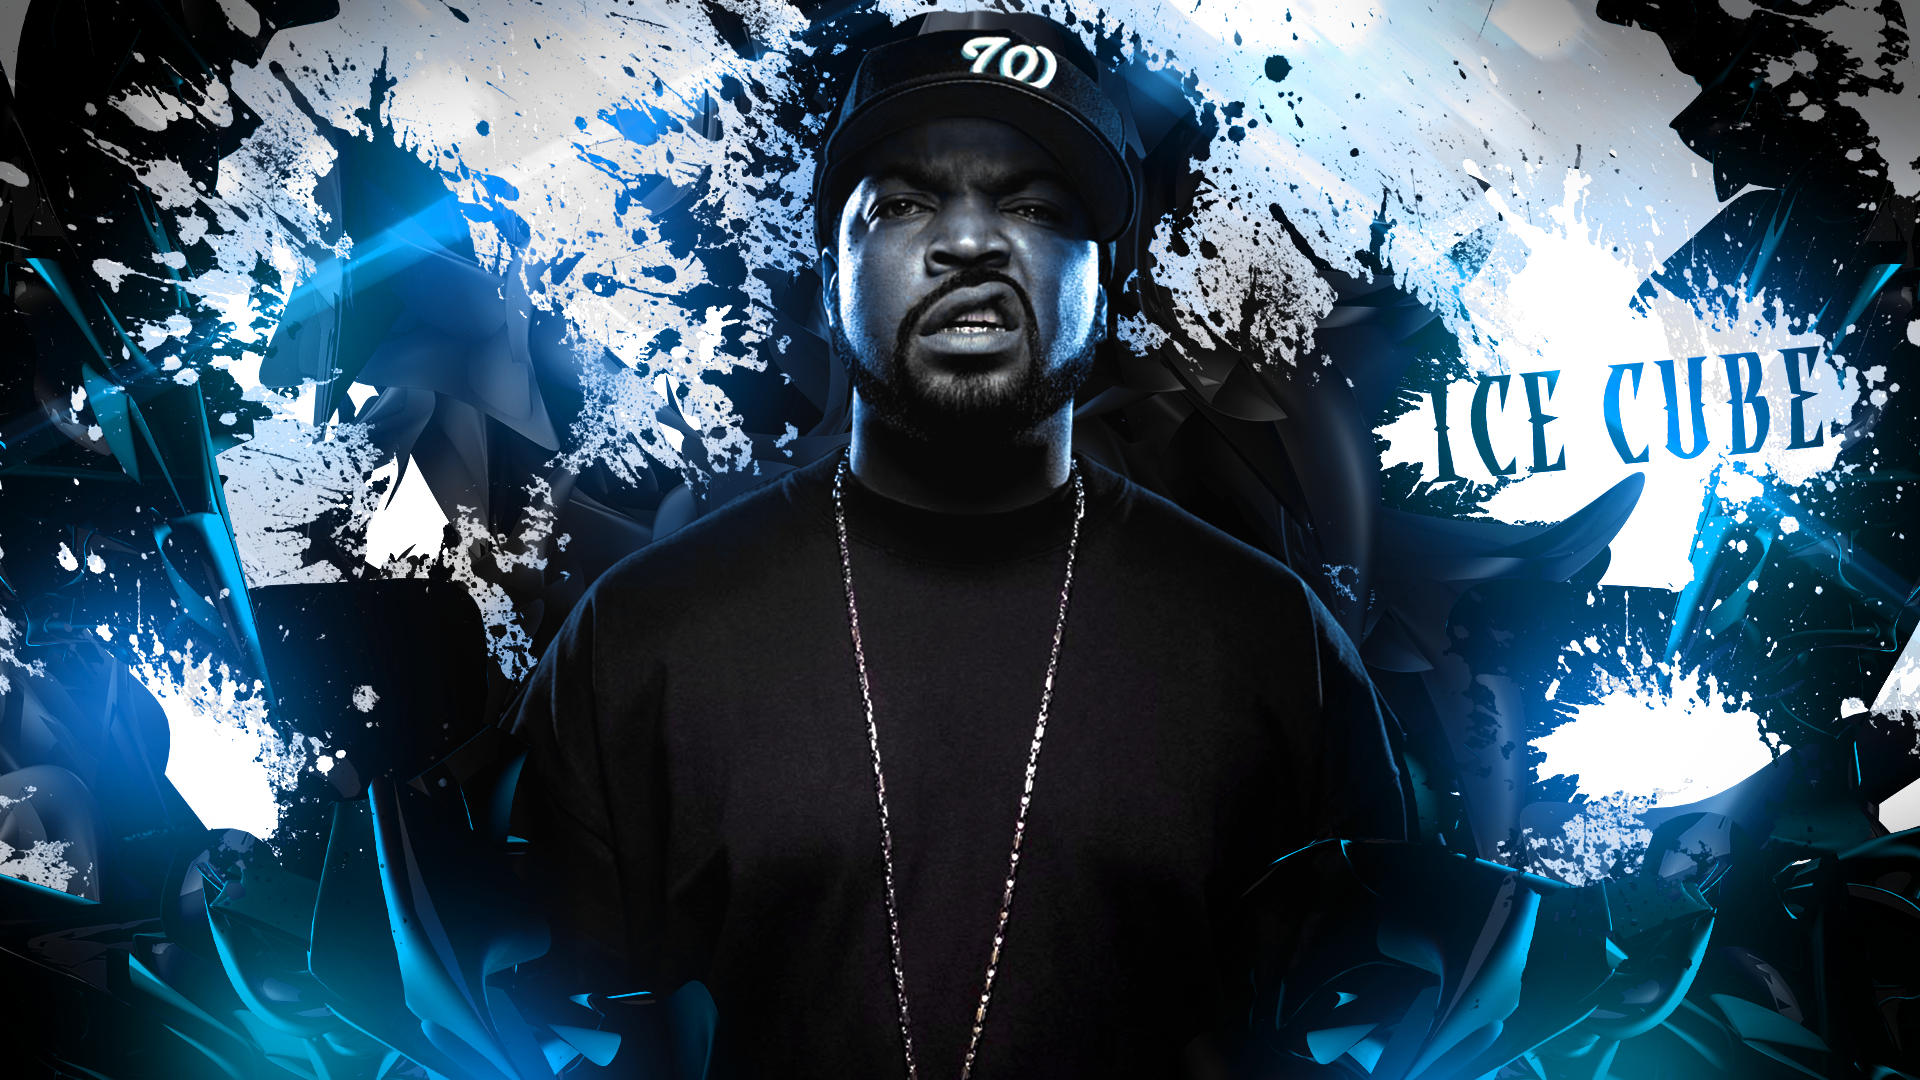 Ice Cube Desktop Background   Wallpaper High Definition High Quality 1920x1080